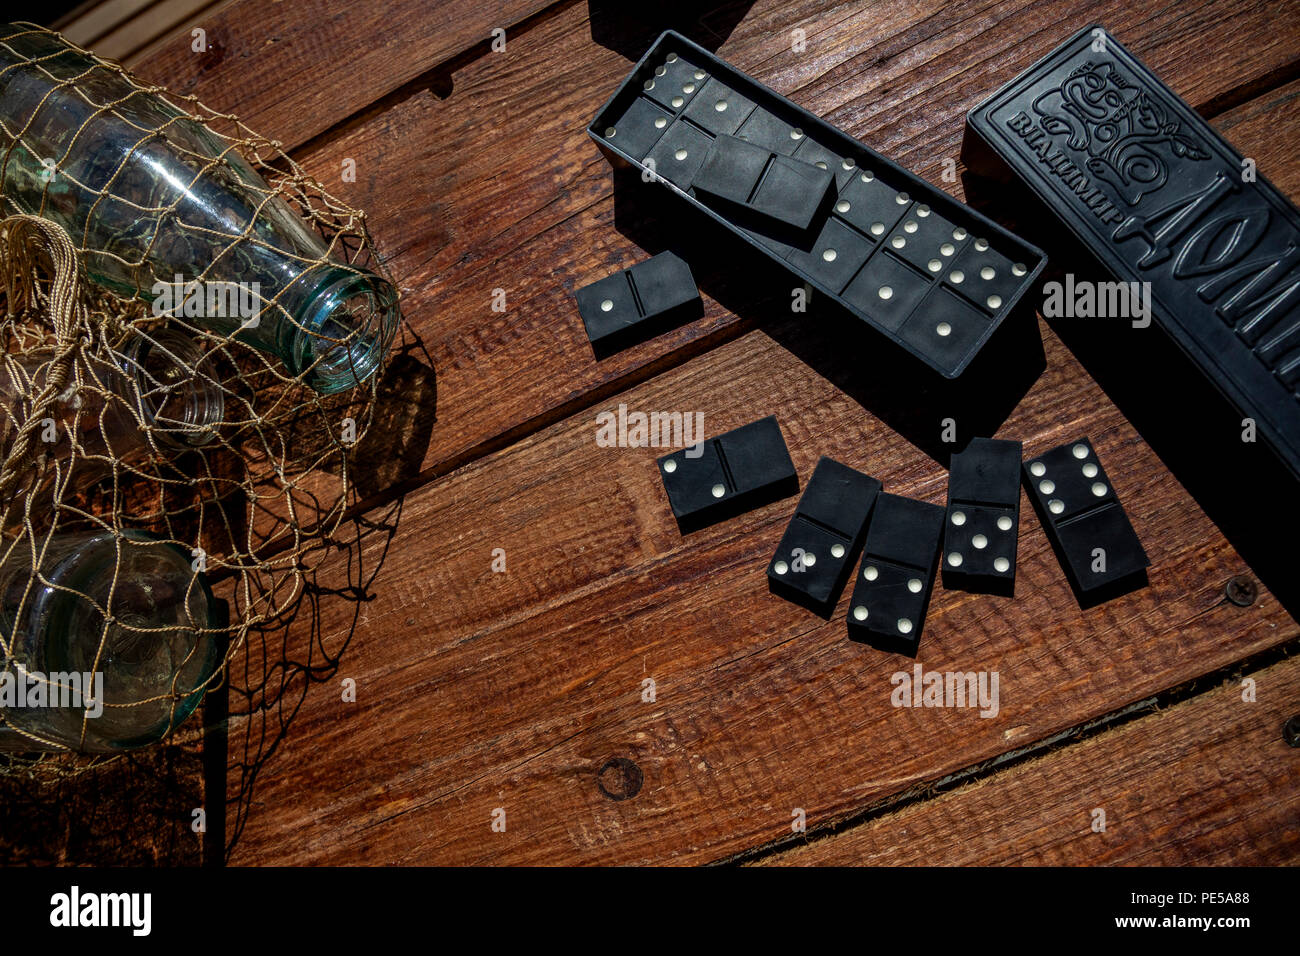 Soviet domino game chips and box - Stock Image